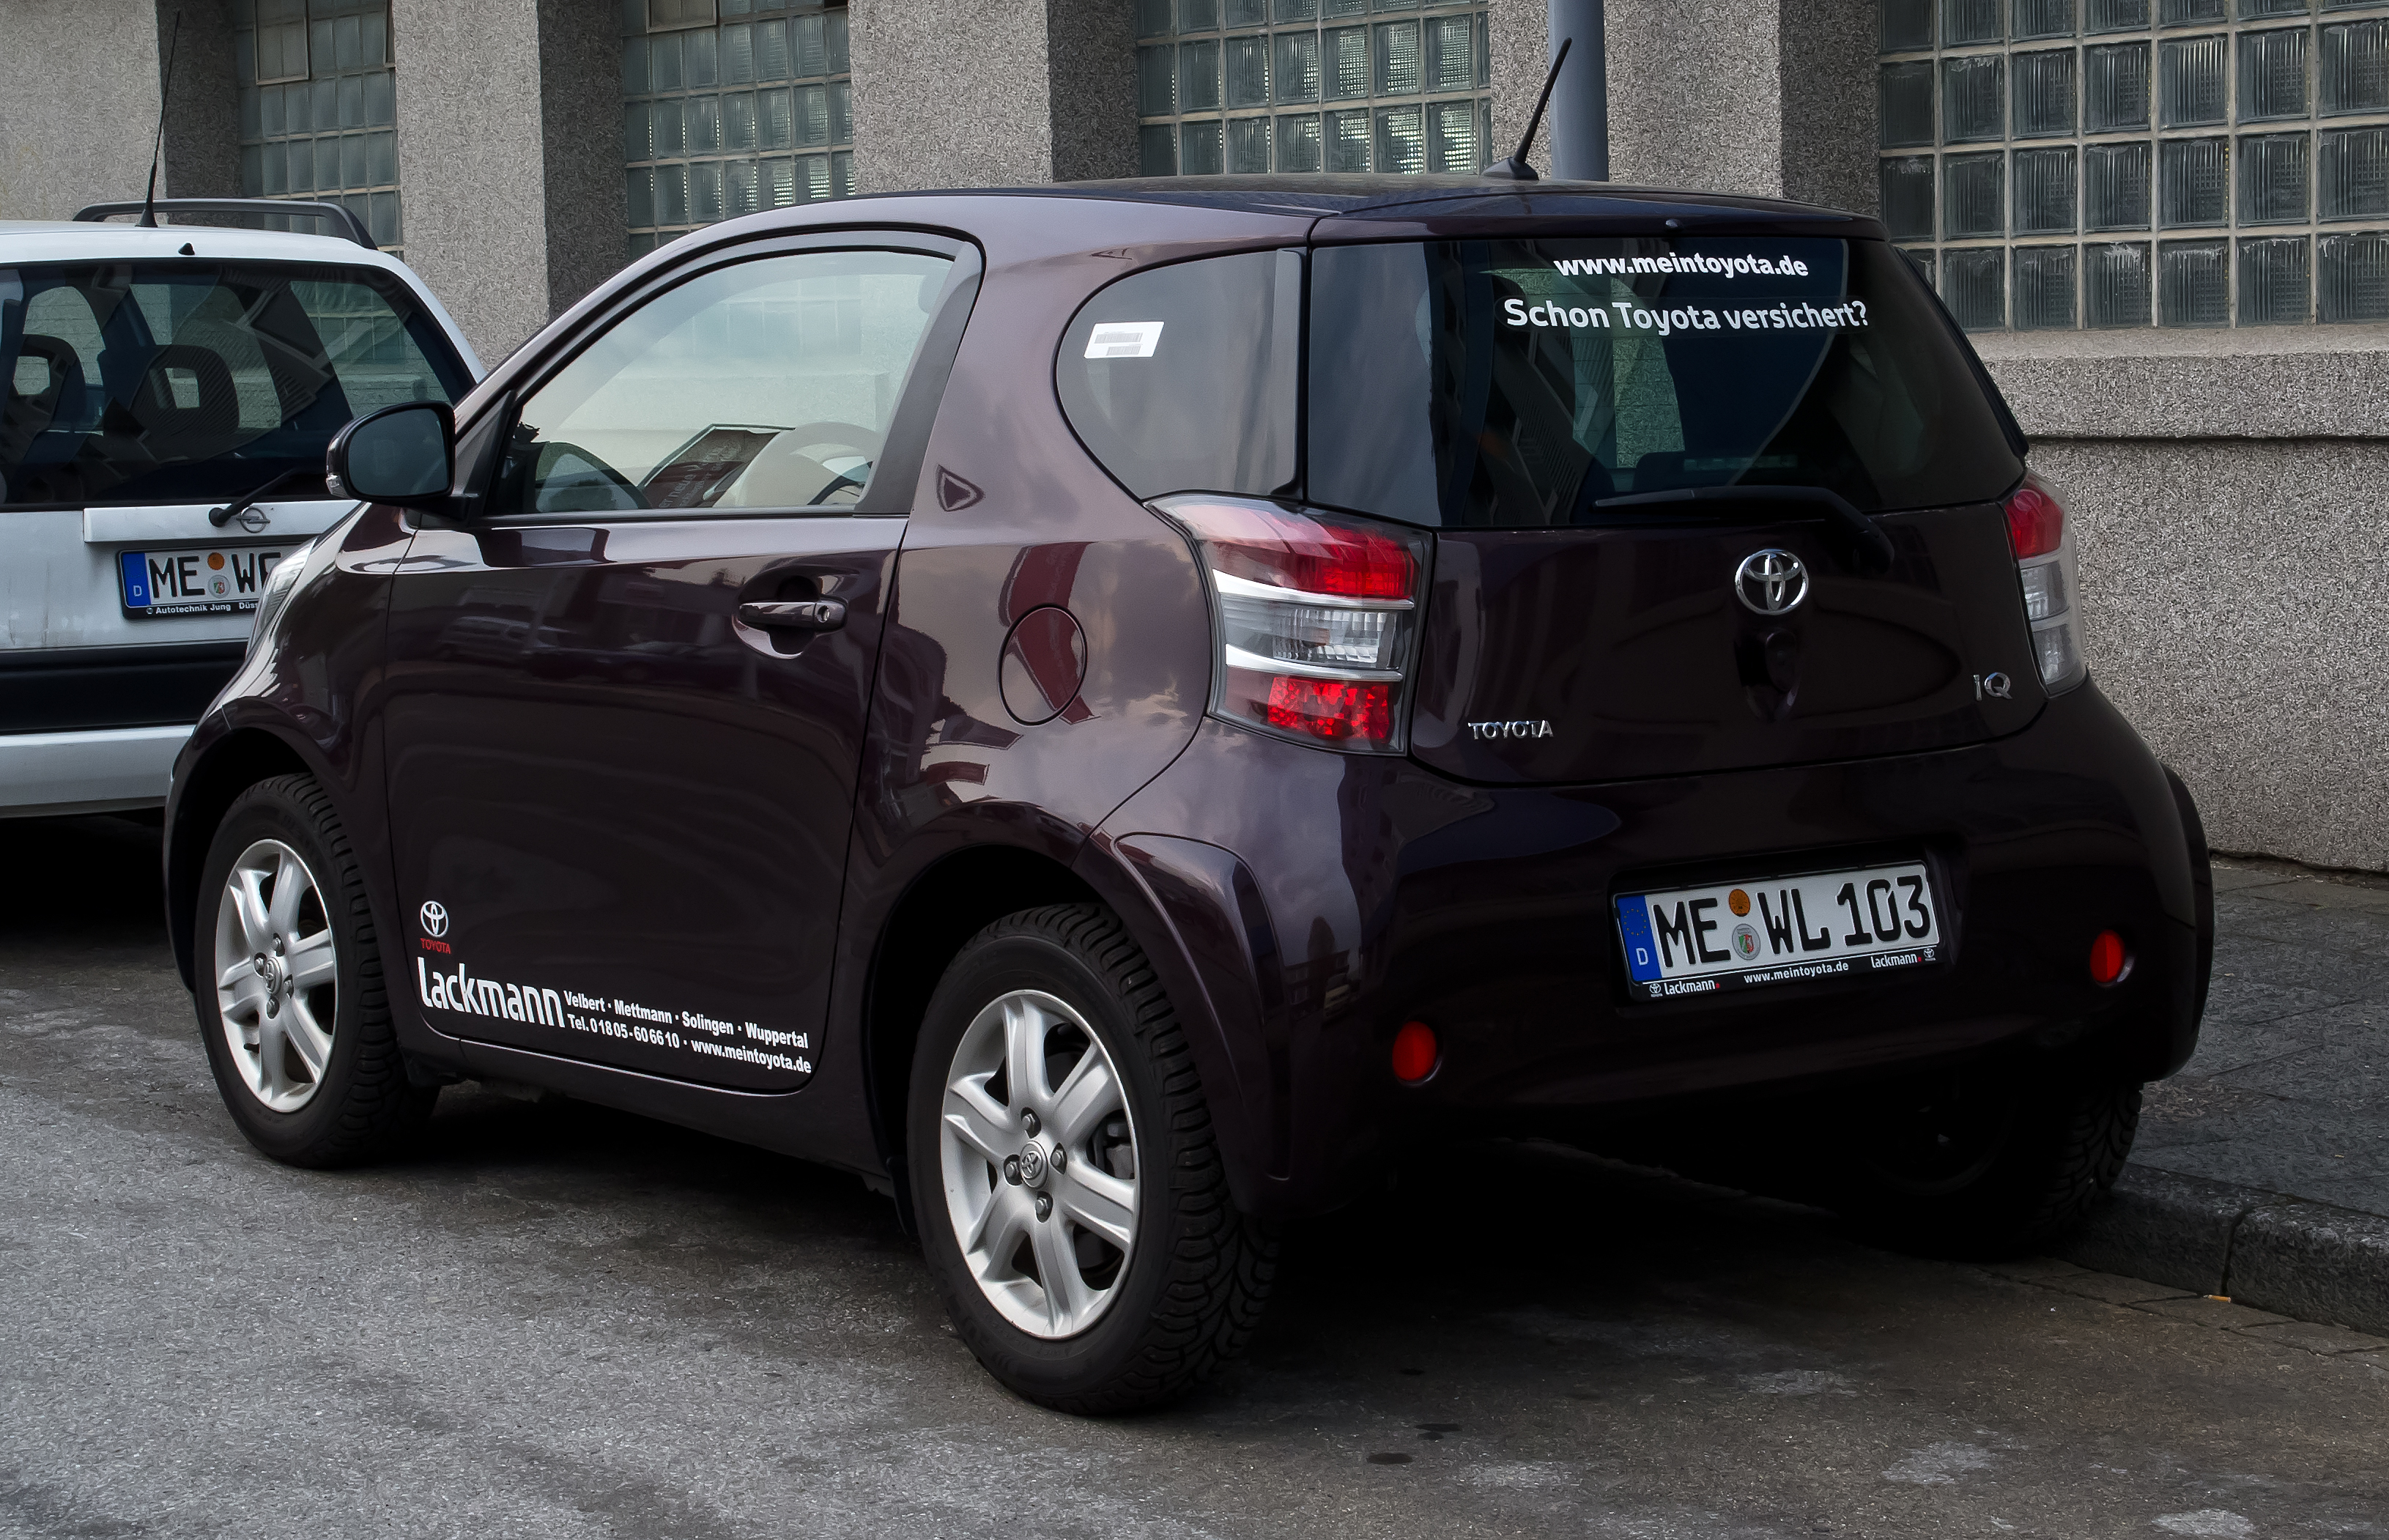 file toyota iq 1 0 heckansicht 3 april 2012 wikimedia commons. Black Bedroom Furniture Sets. Home Design Ideas